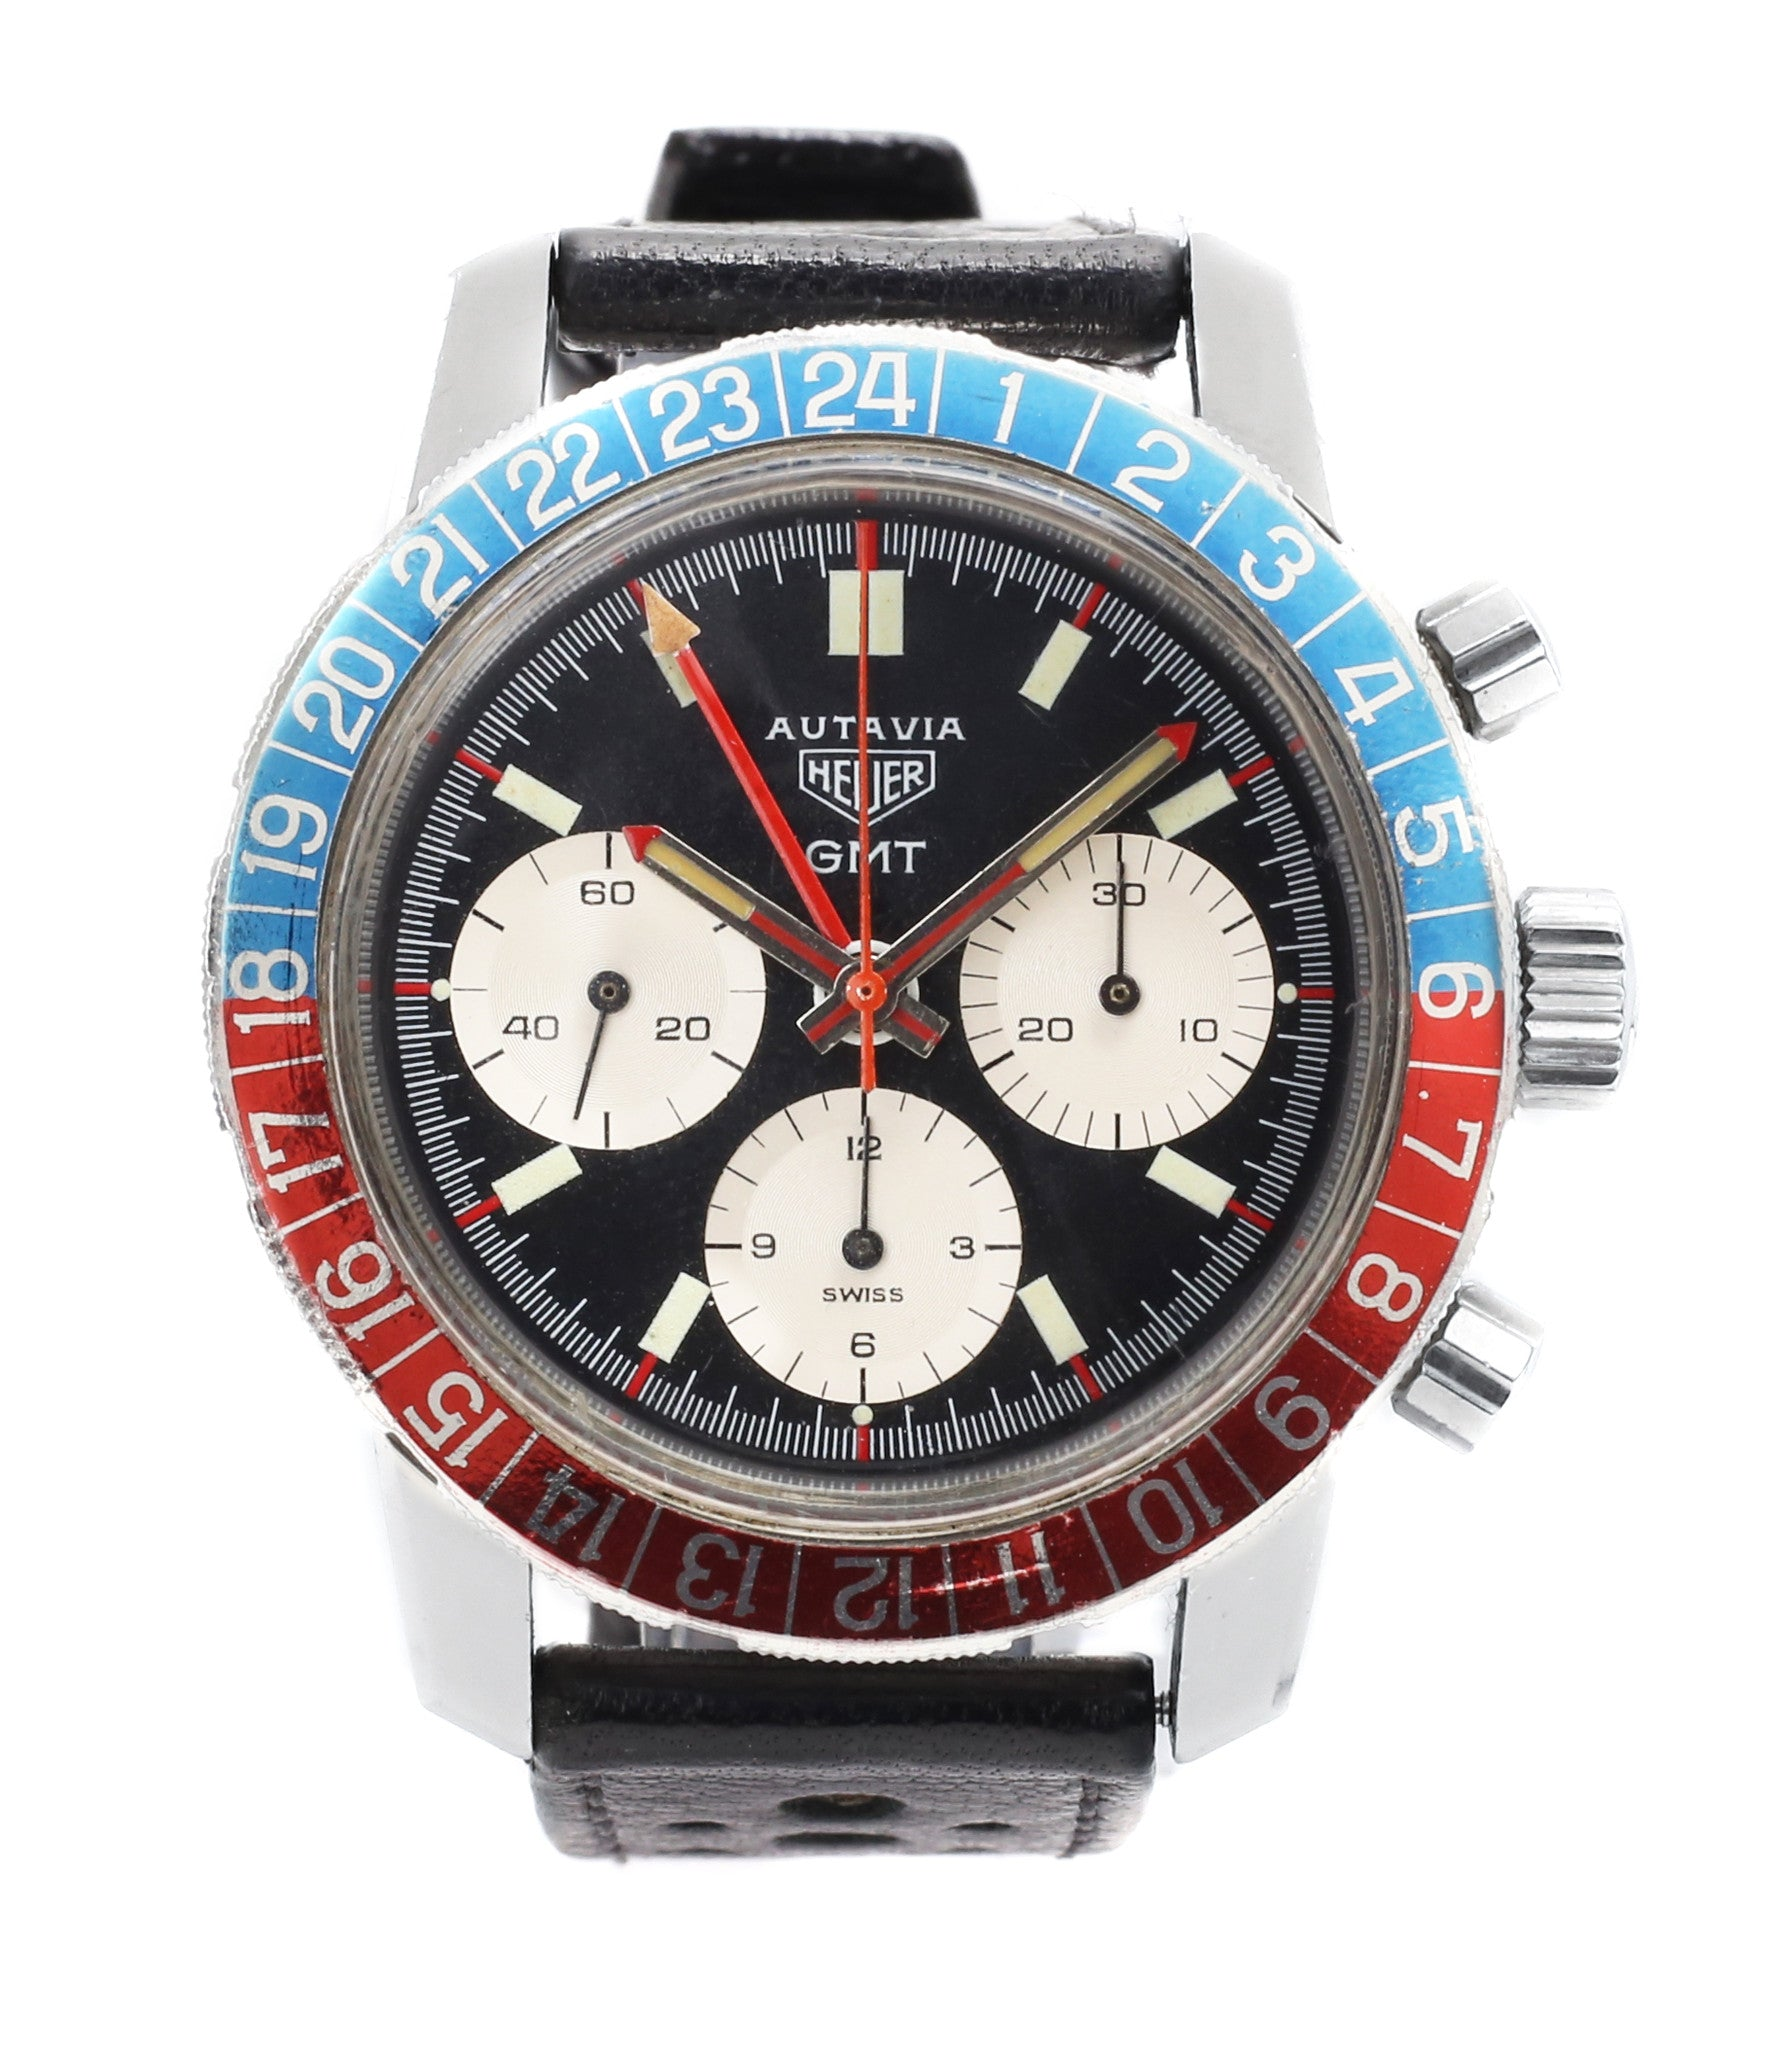 buy Heuer Autavia GMT 2446C vintage chronograph steel watch online at A Collected Man London